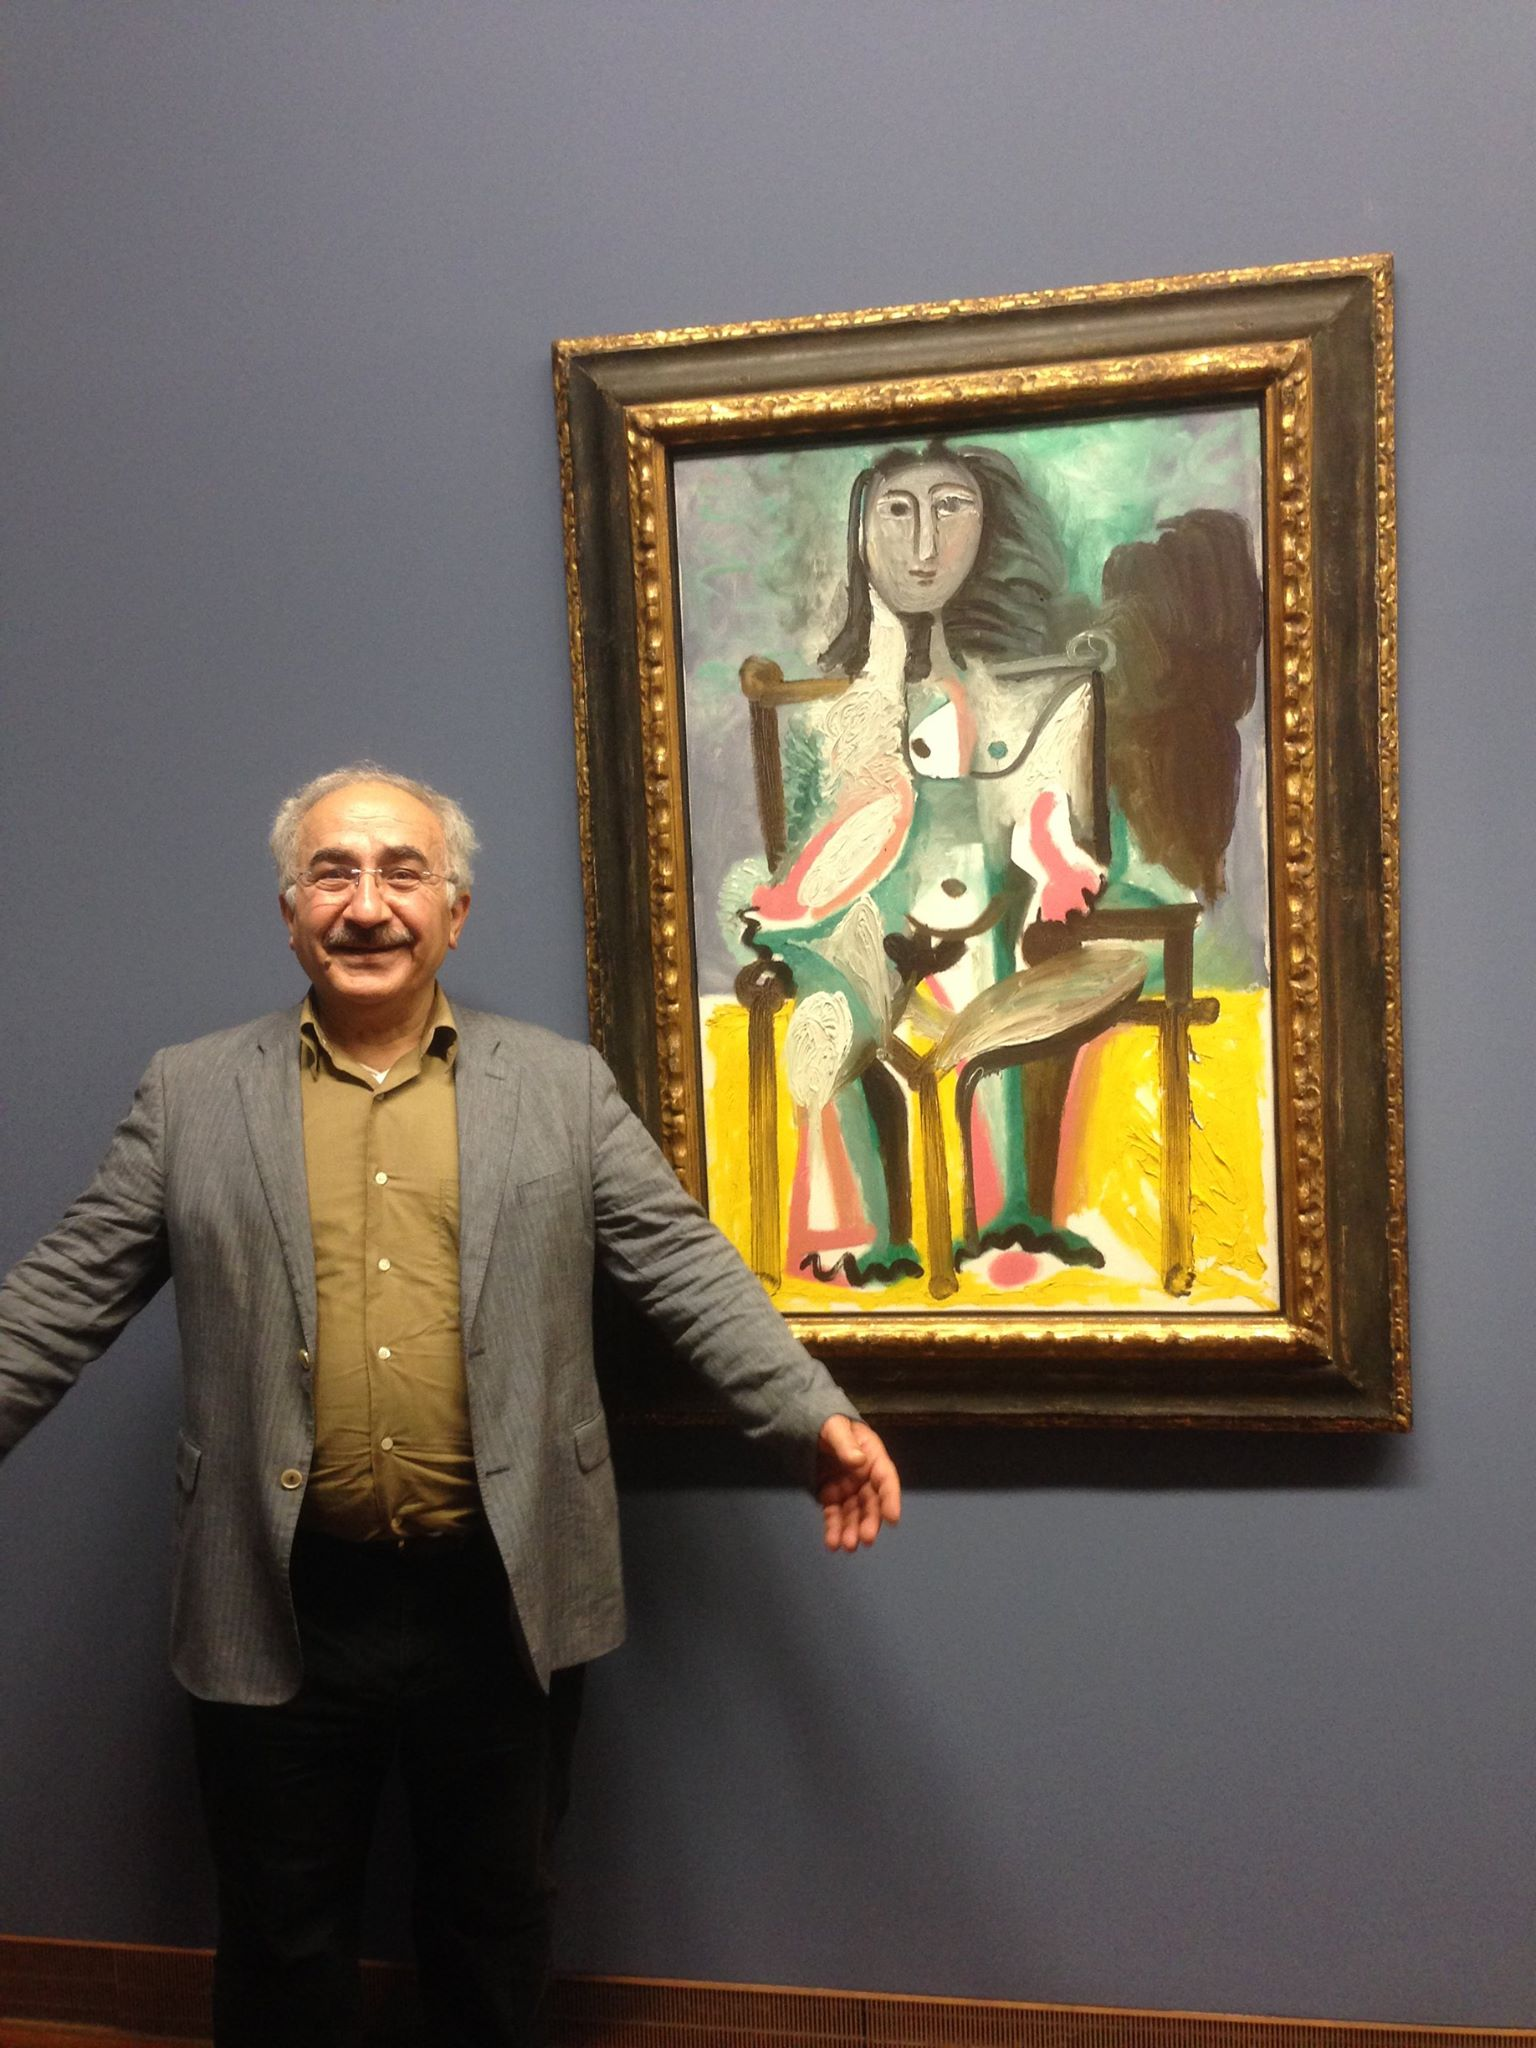 PICASSO : source of energy ,we needed before leaving to Rojava